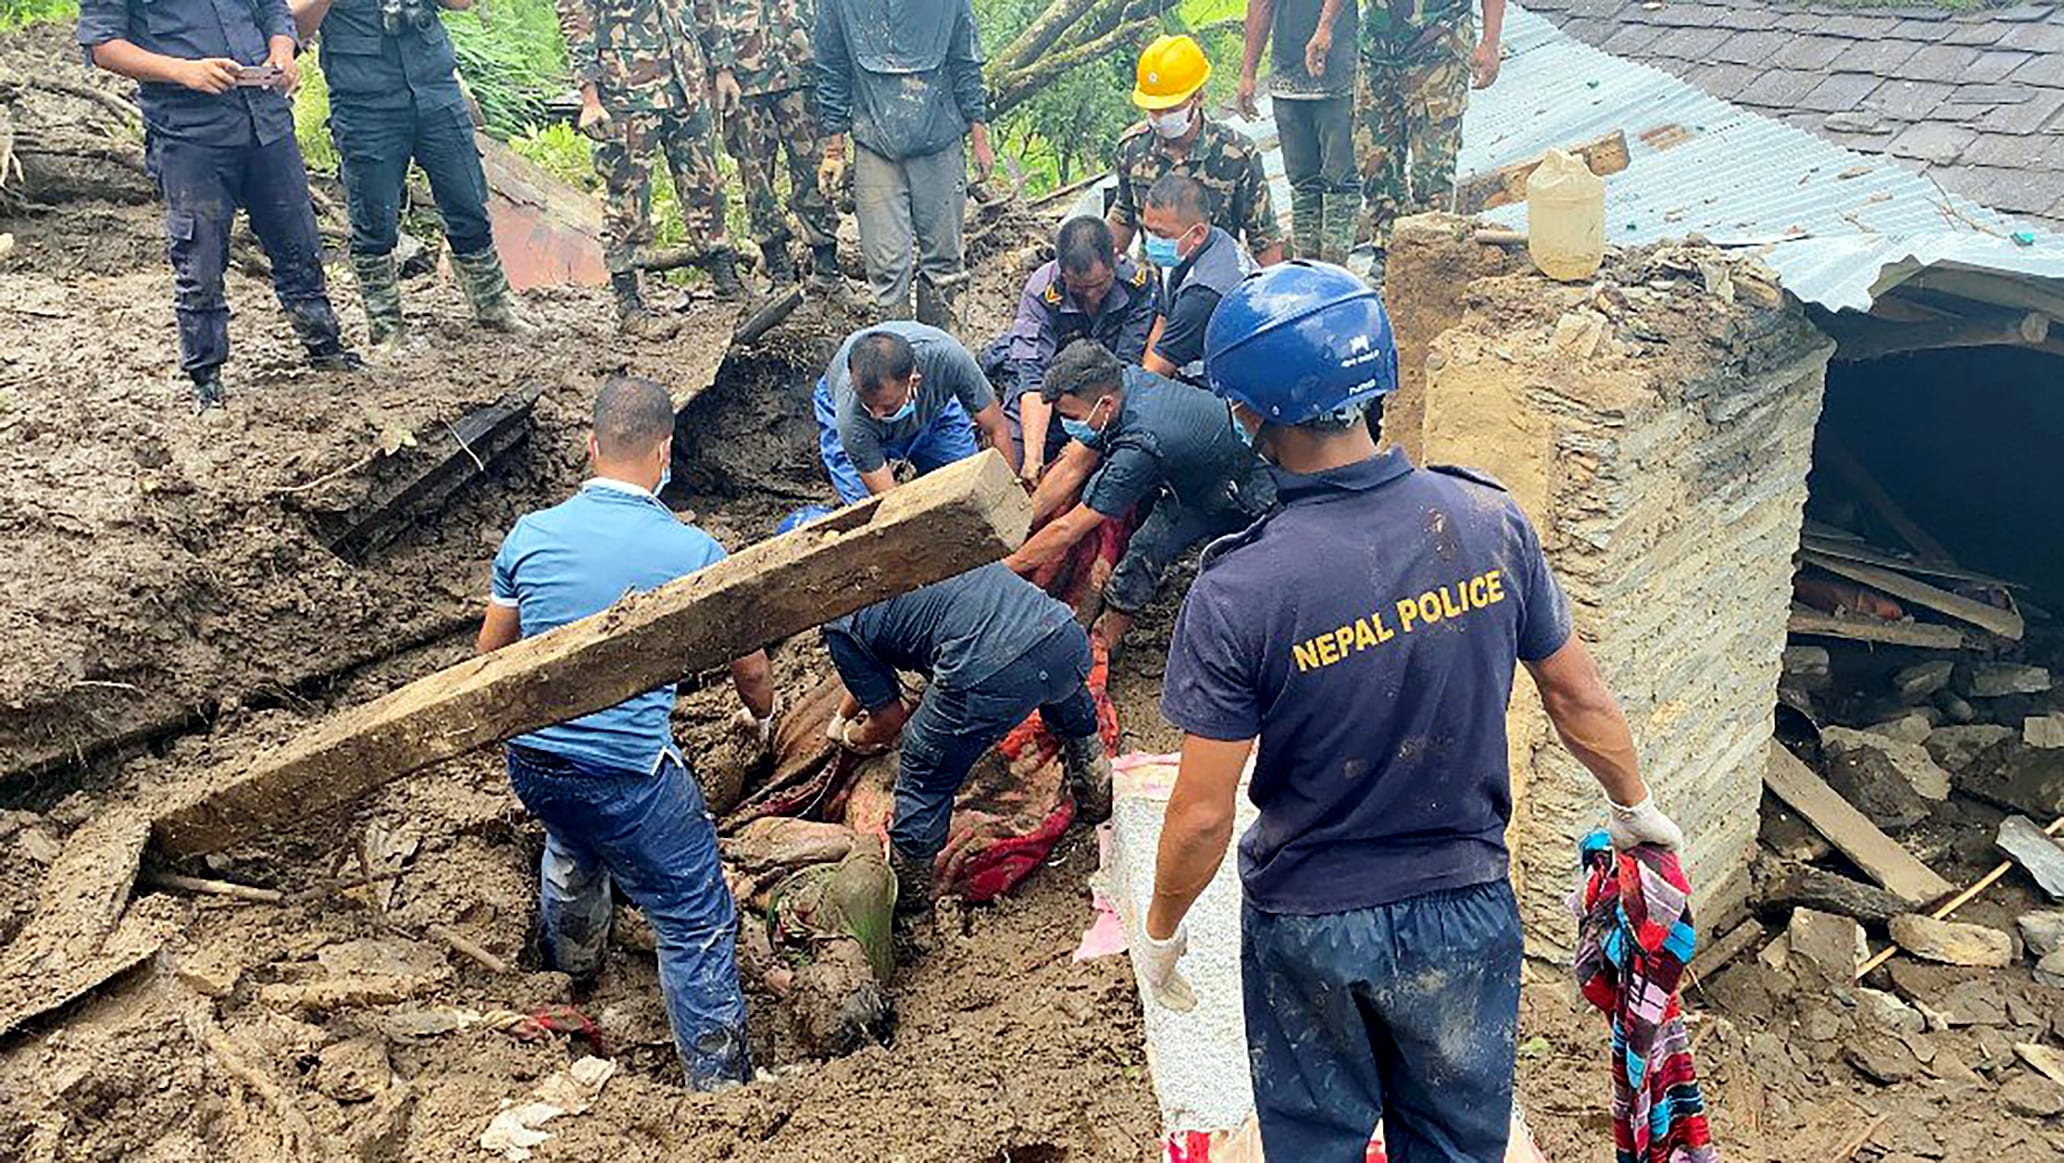 At least 60 people killed, 41 missing following flood and landslides in the past 4 days in various parts of Nepal, due to heavy rainfall in the region. Myagdi district of western Nepal is worst affected with 27 deaths, where search and rescue operat